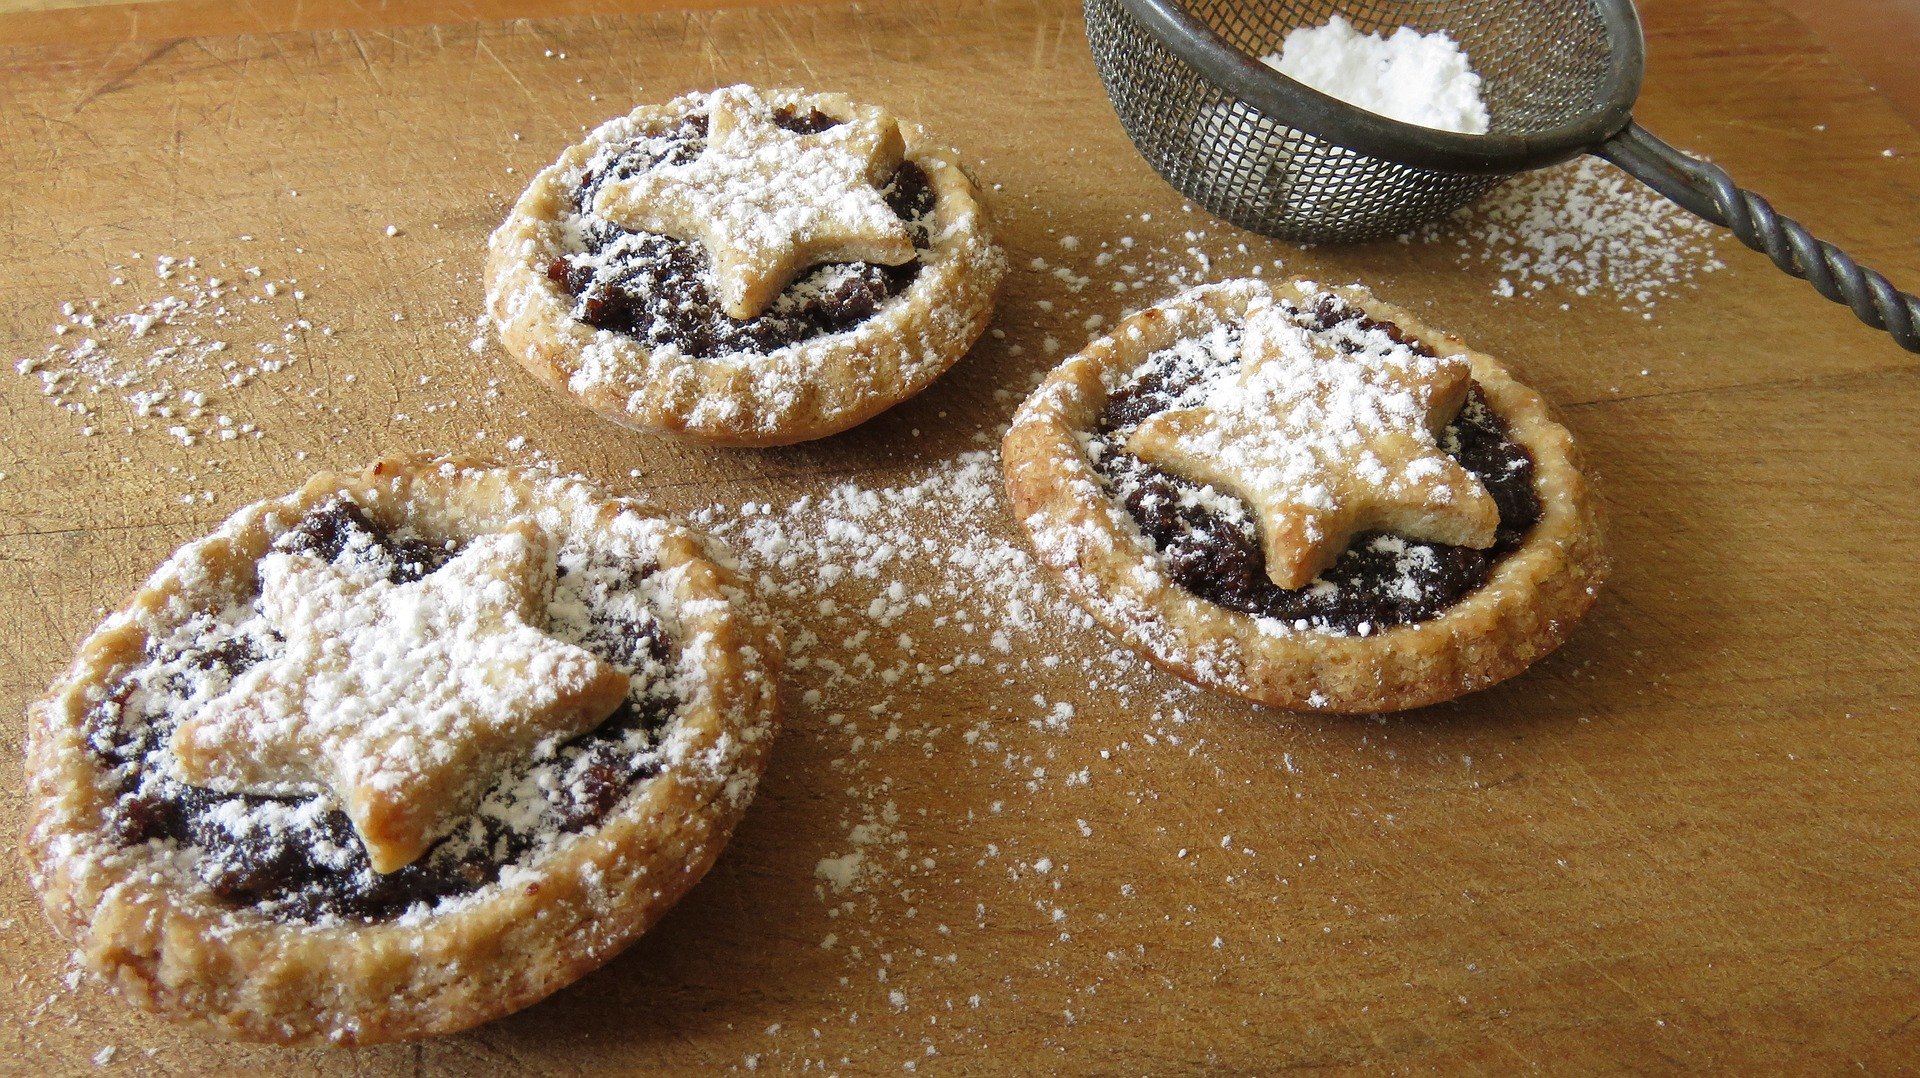 mince-pies. bluemorphos via Pixabay. CC0 Creative Commons